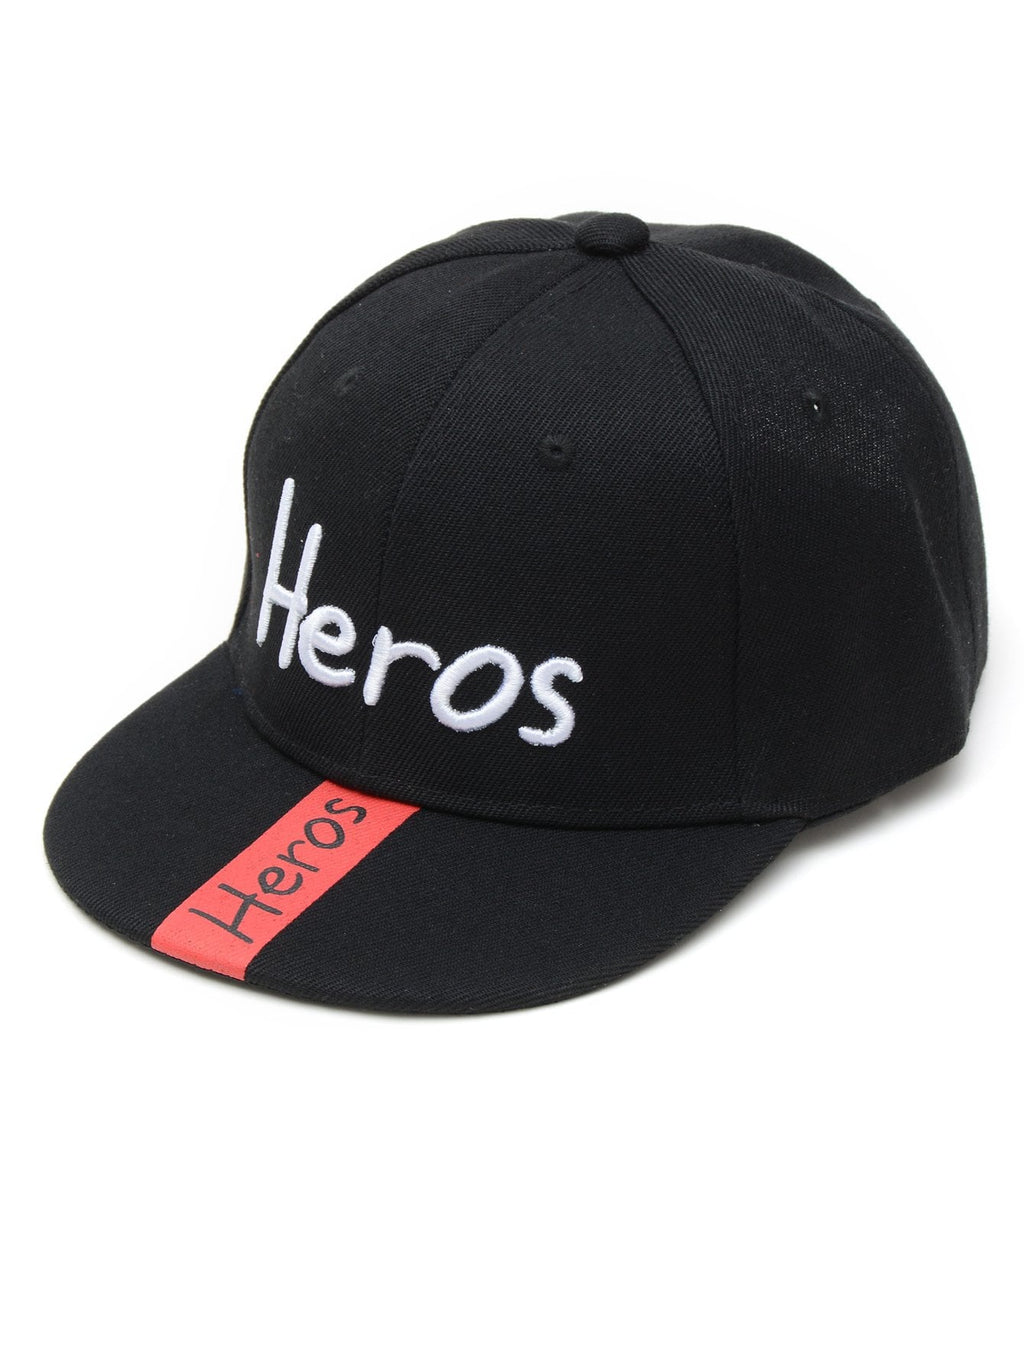 Boys Caps - Embroidered Letter Snap Cap